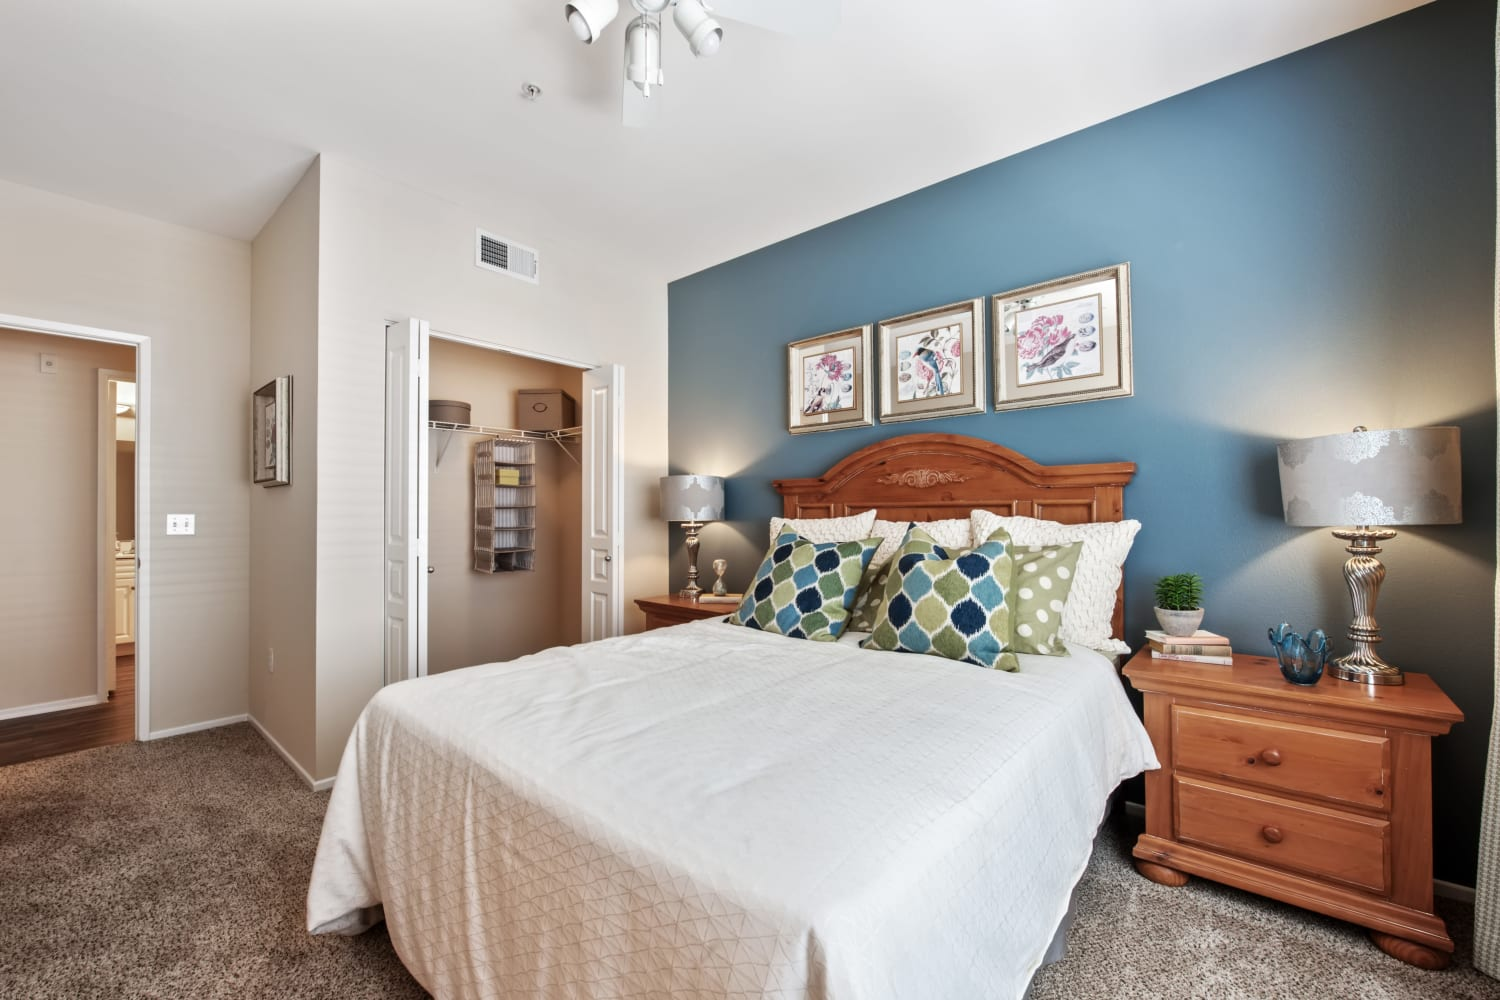 The Village on 5th in Rancho Cucamonga, California offers a bedroom